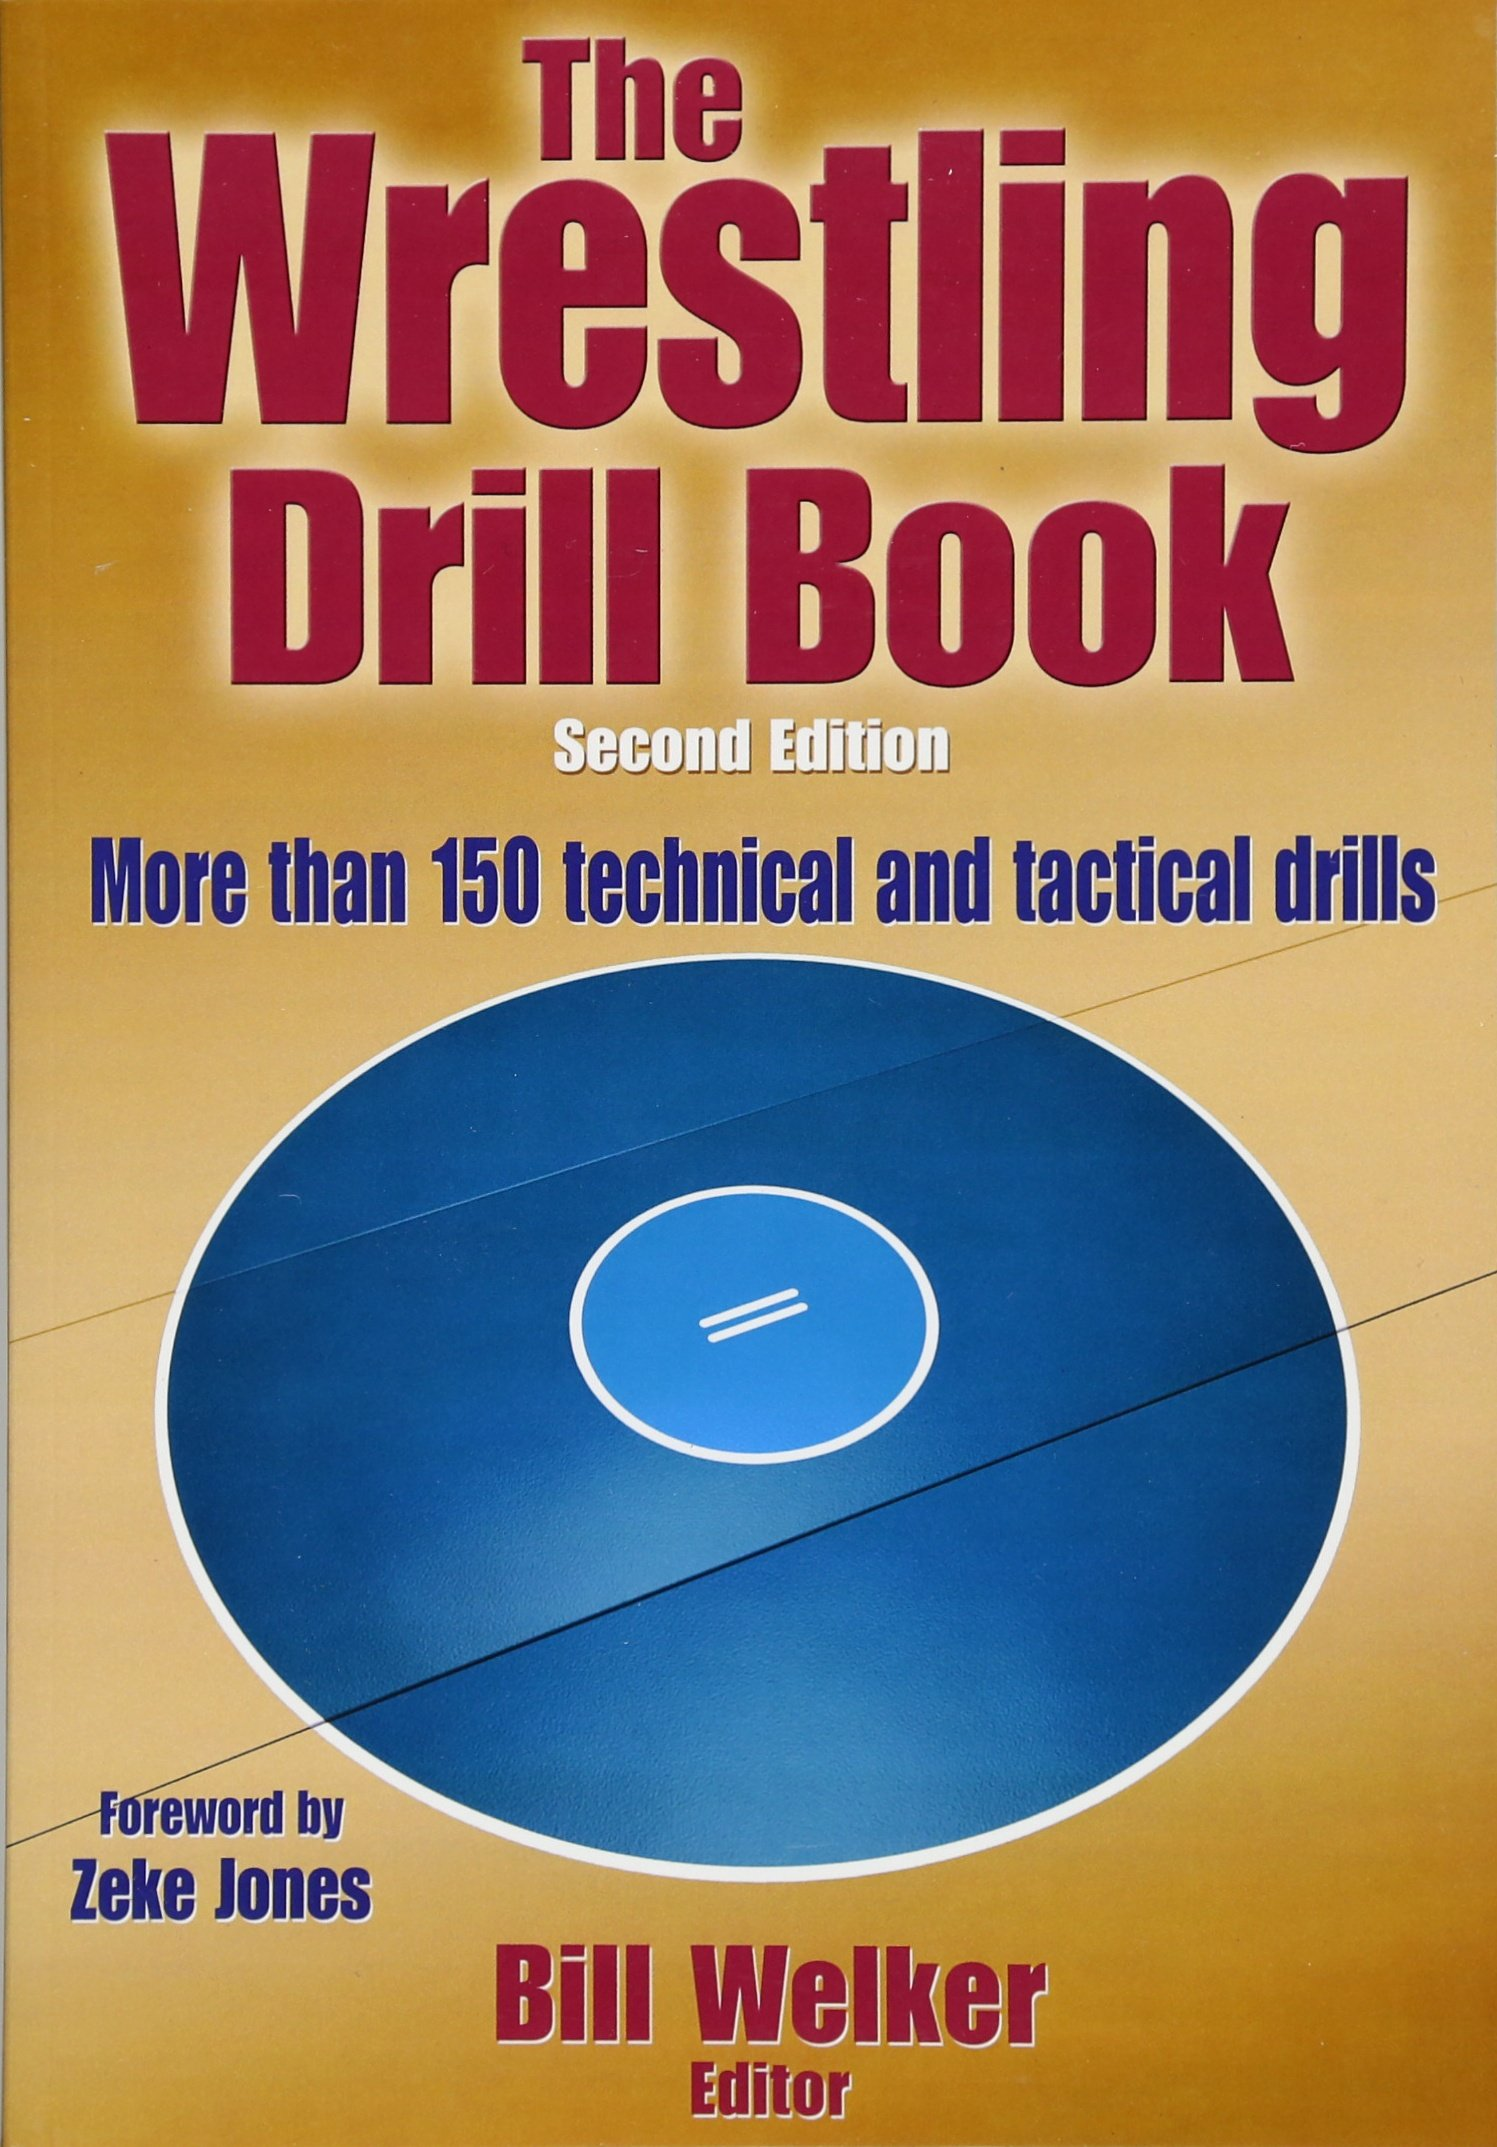 Wrestling Drill Book-2nd Edition, The: William Welker: 9781450432160:  Amazon.com: Books